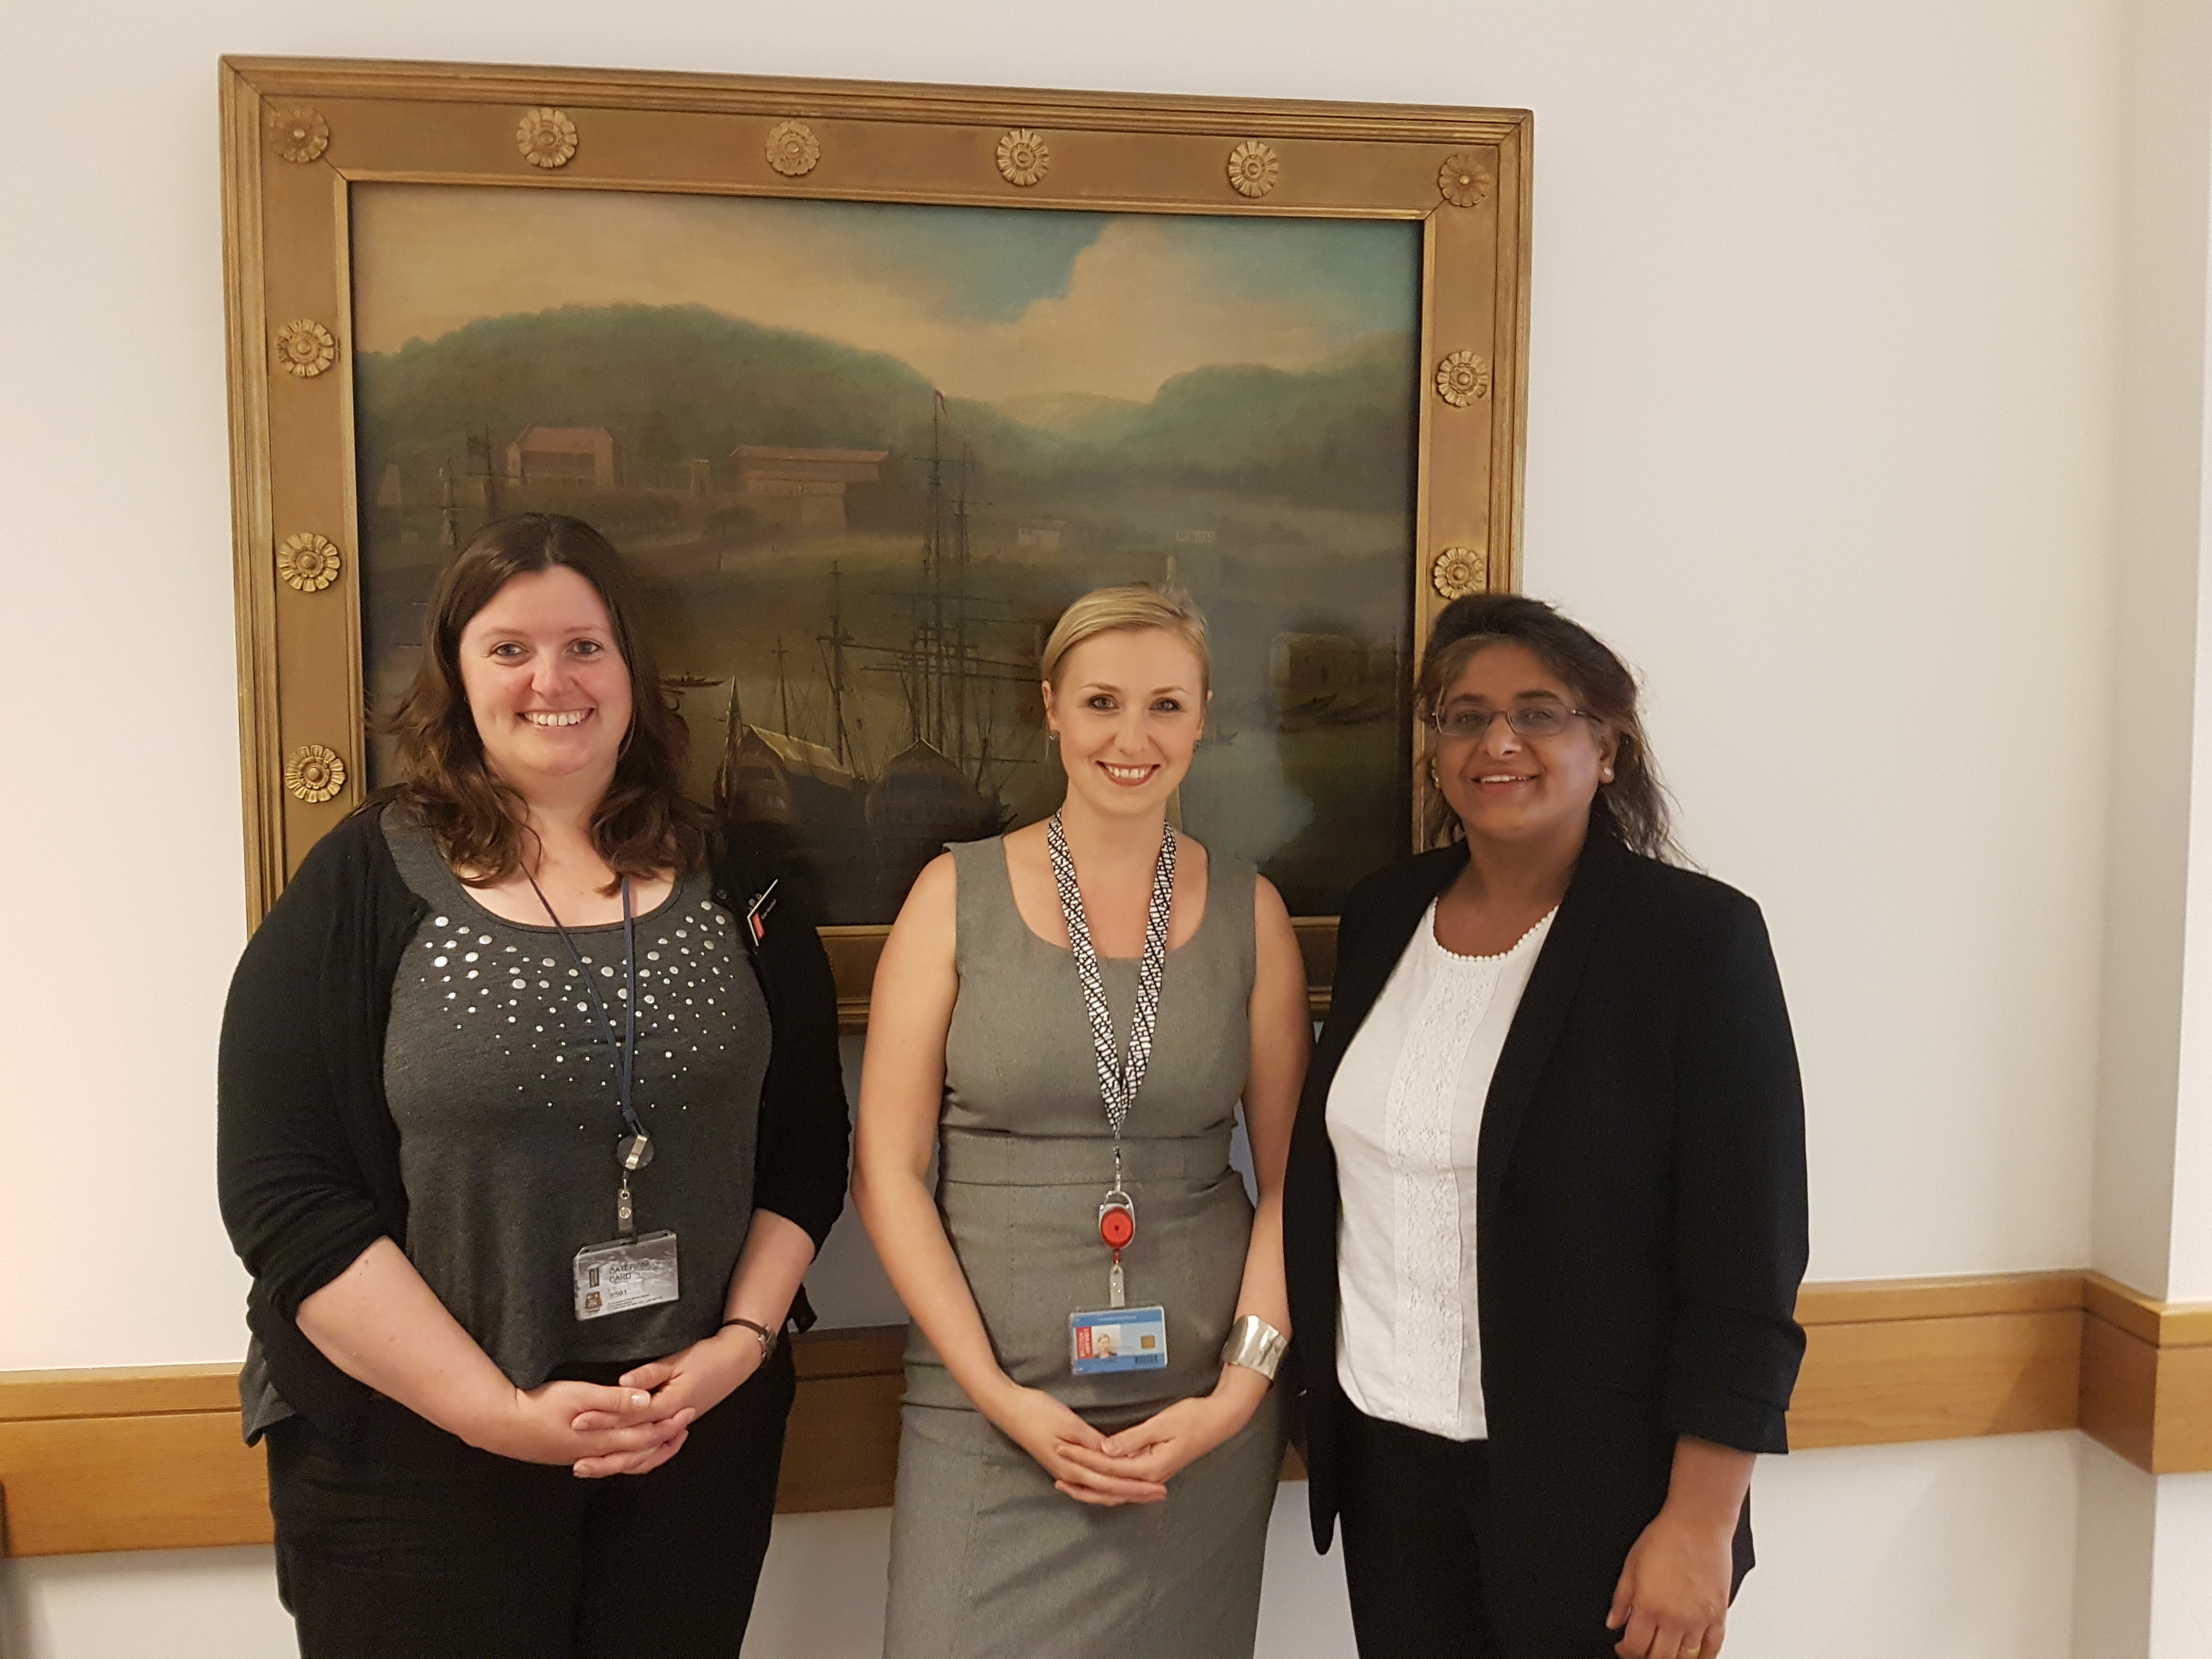 Our International Office team: (from left) Kate Marshall, Marcie-Jane Hopkins and Kirnn Kaur.